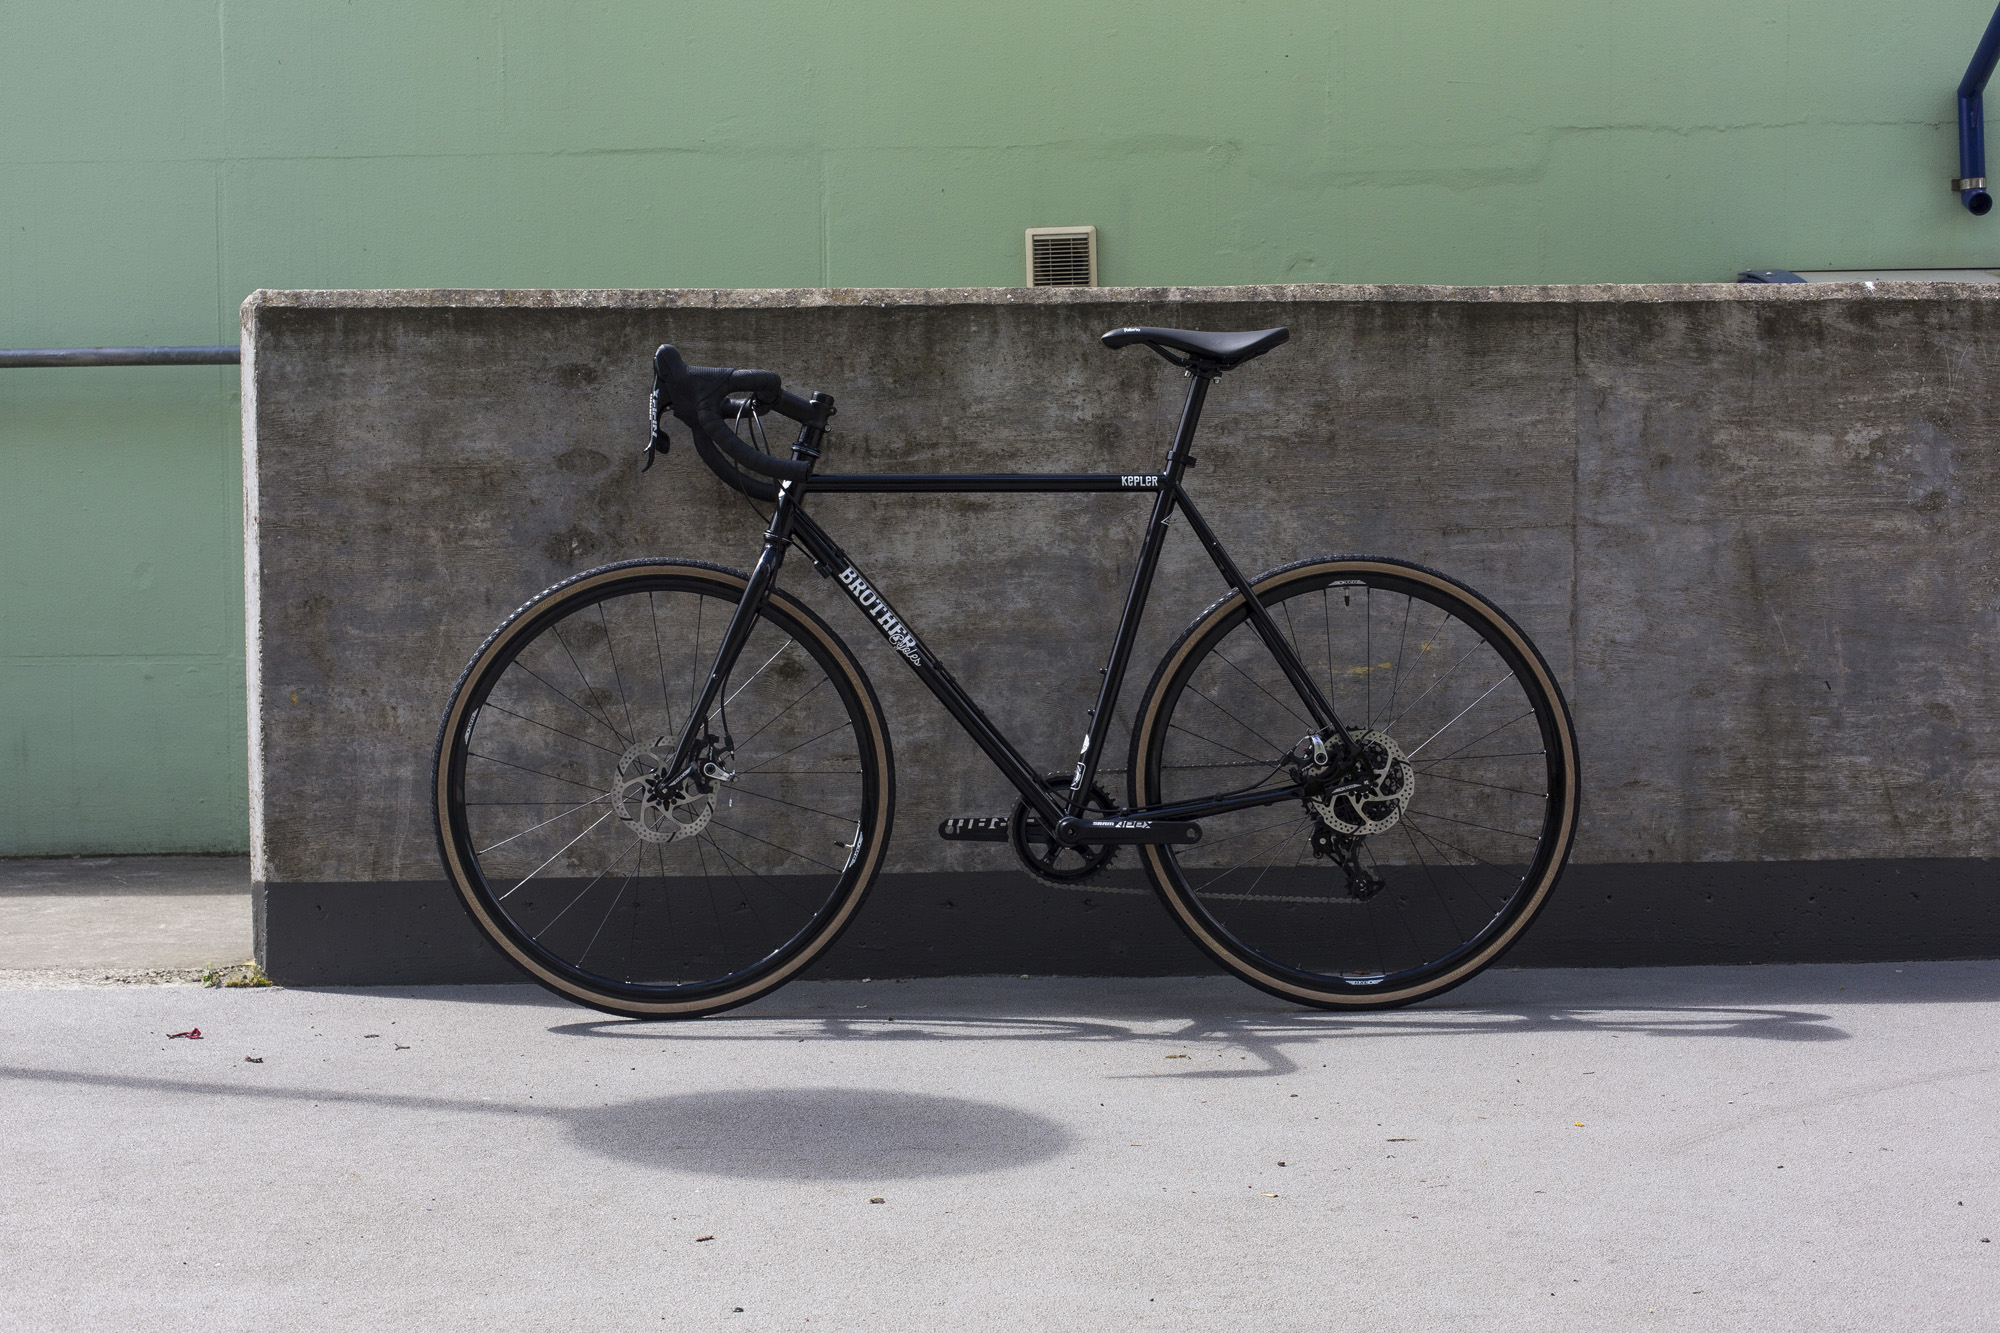 seabass-cycles-instore-bikes-25-april-2019-brother-cycles-kepler-disc-complete-black-5207.jpg